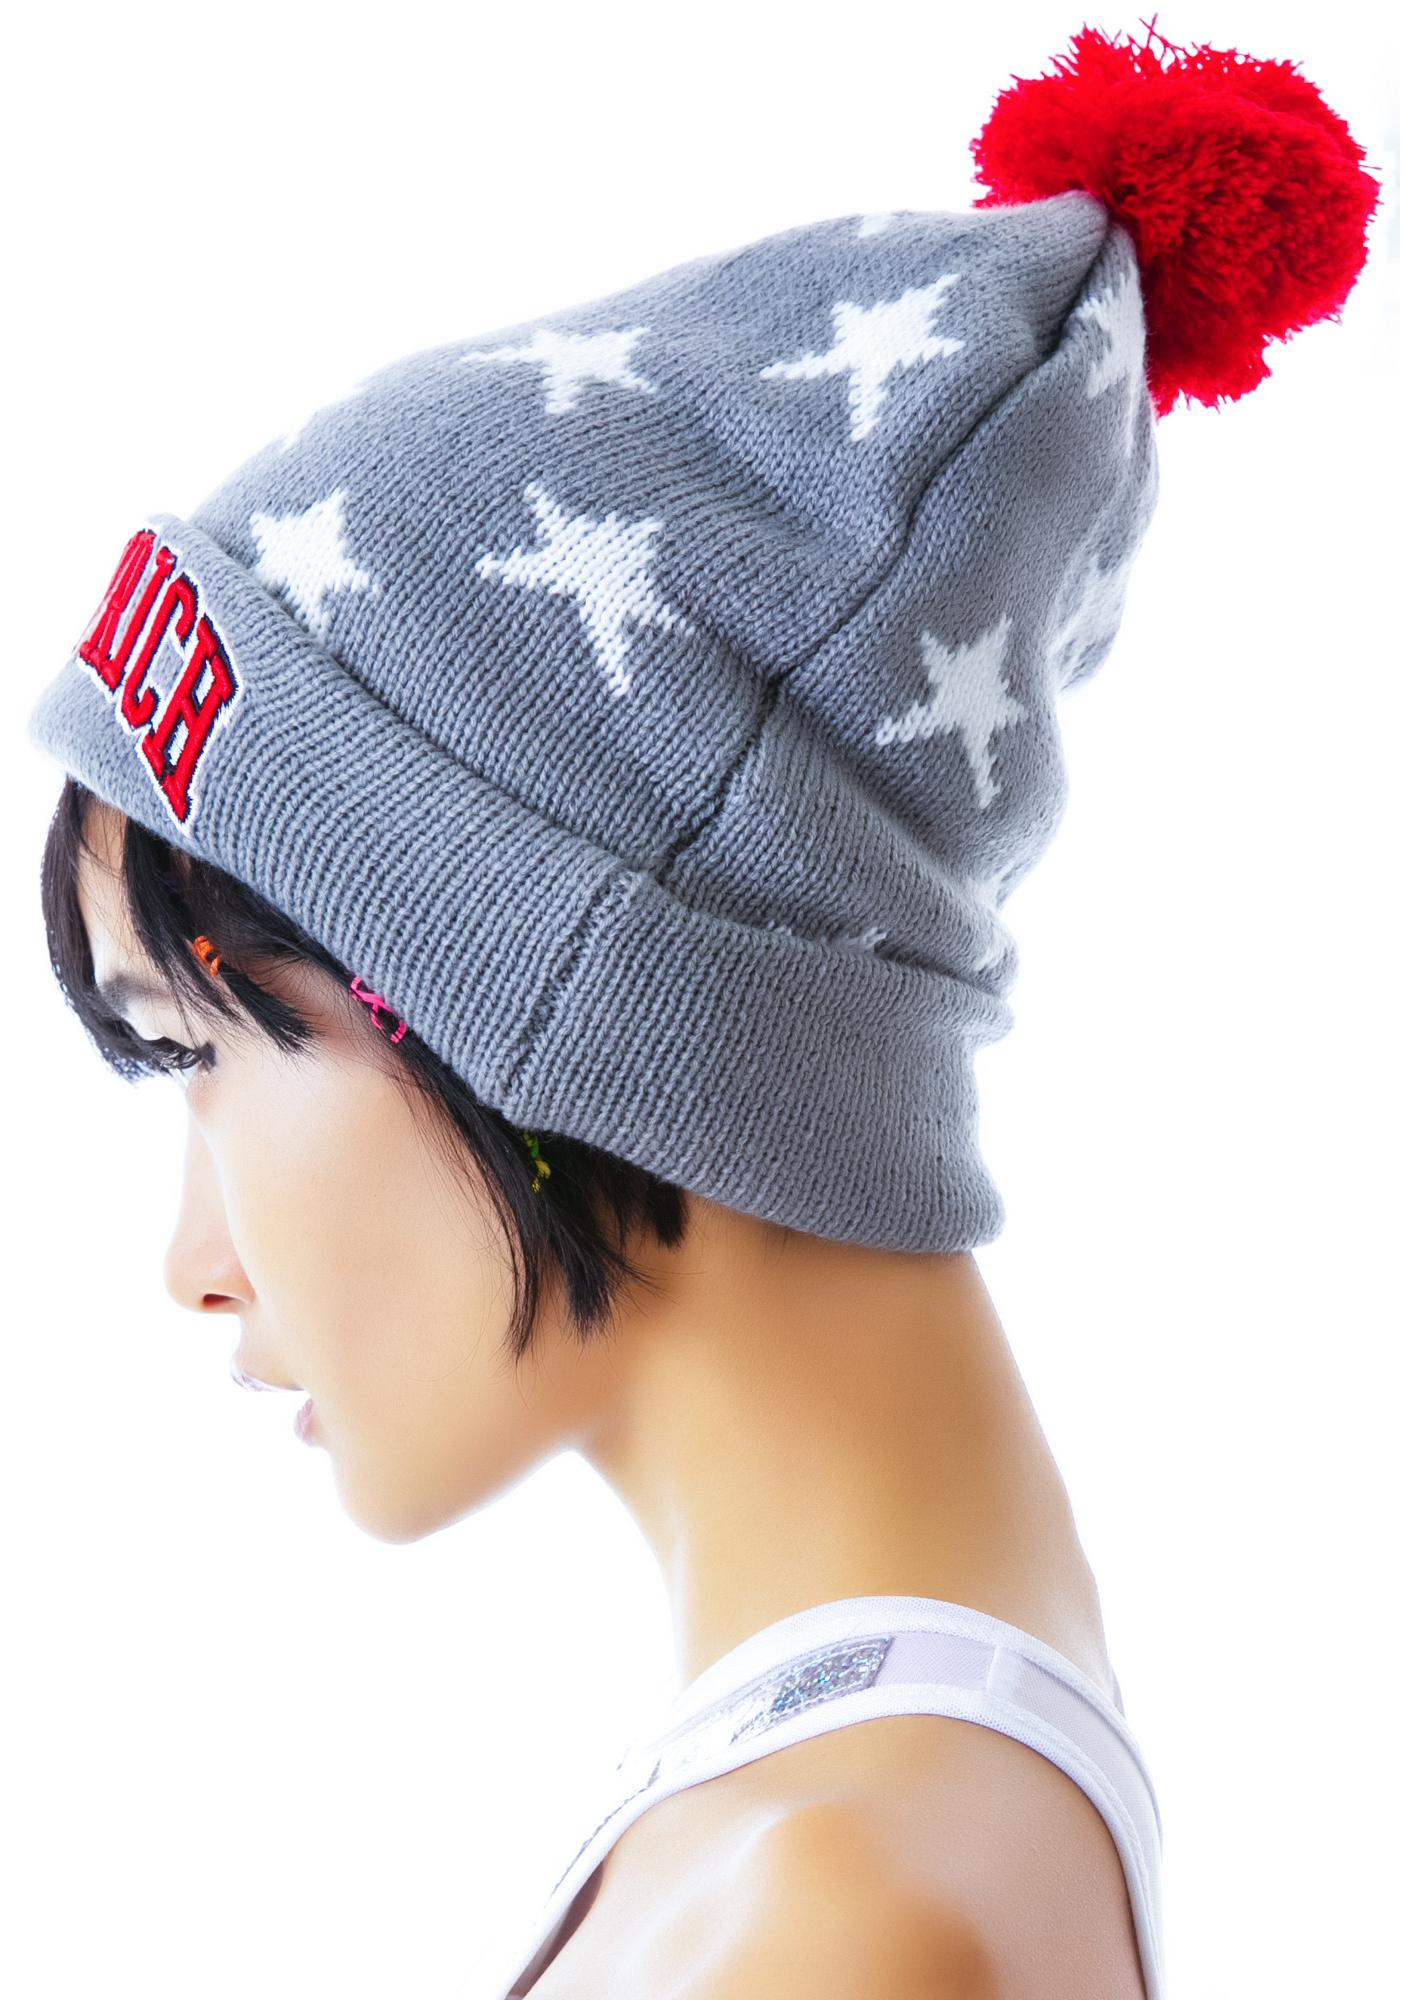 Joyrich All Star Beanie